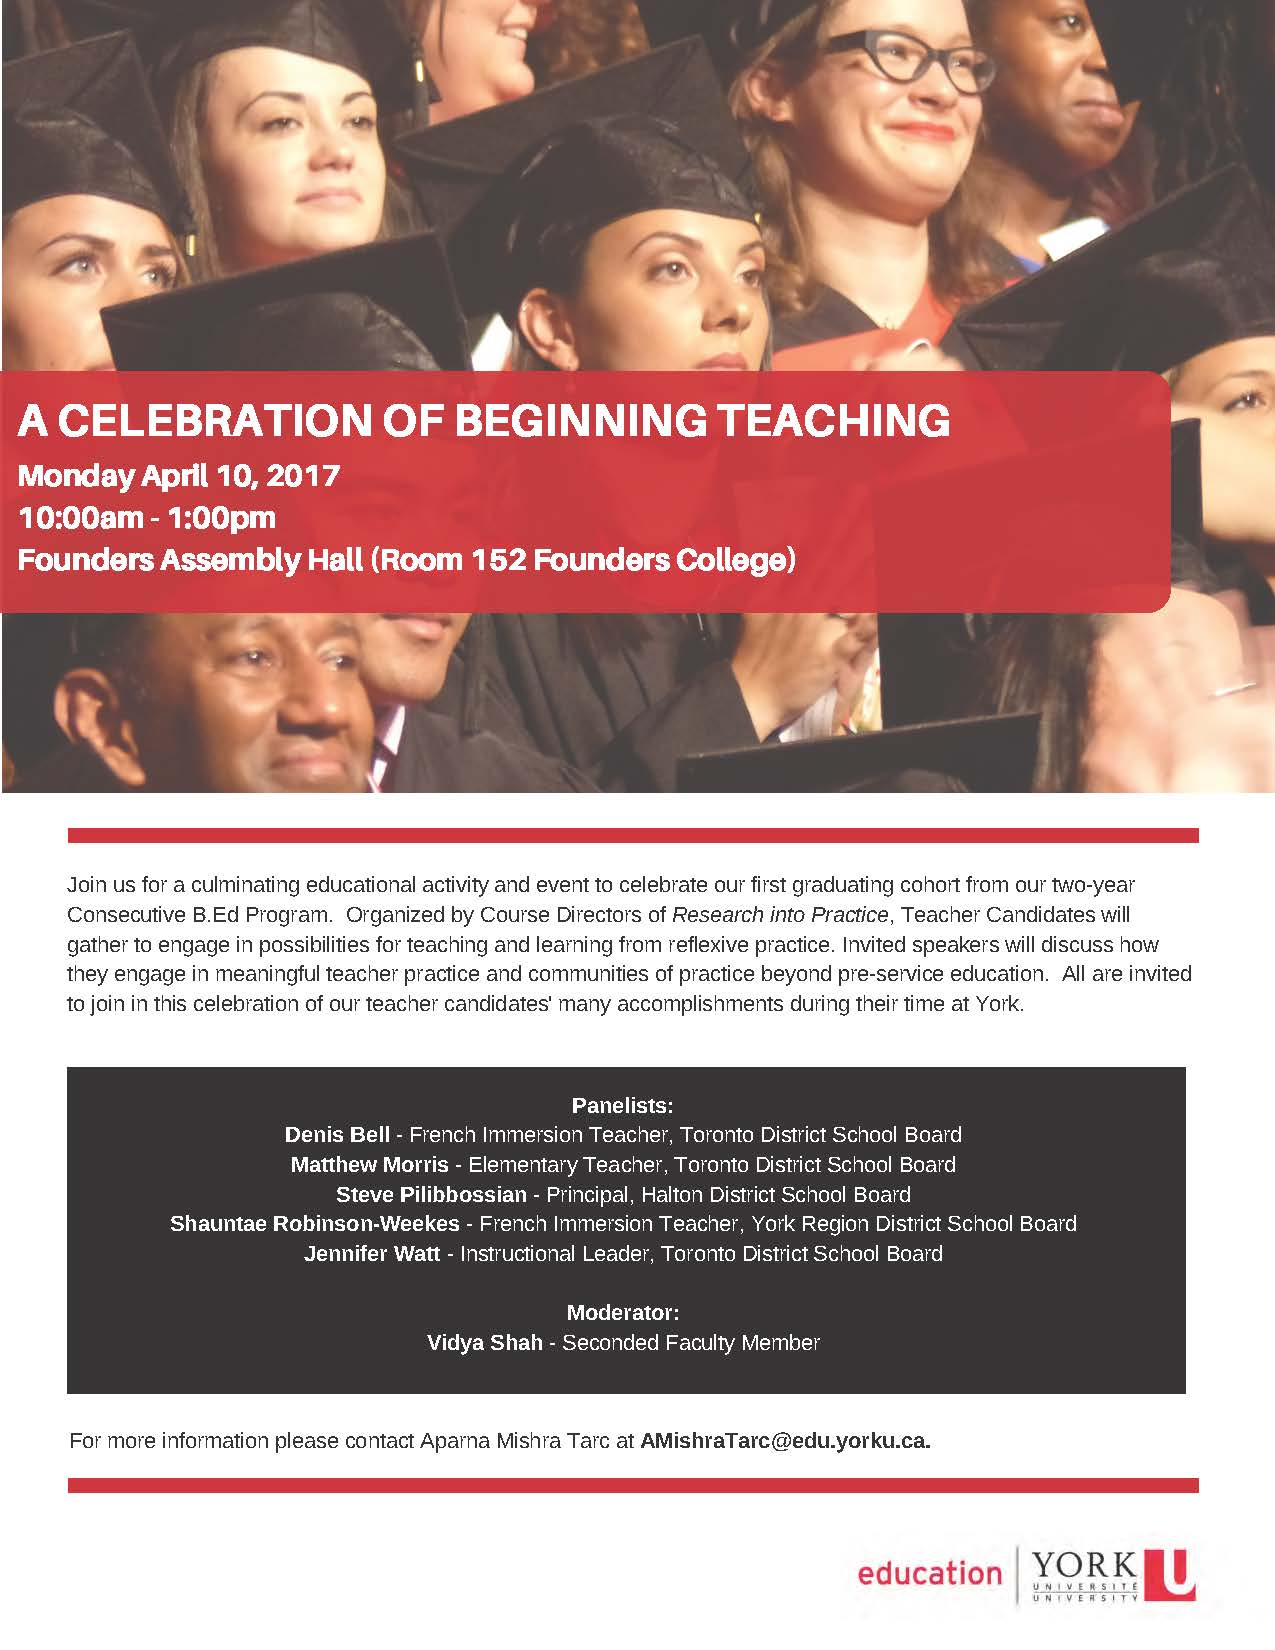 Celebration of Beginning Teaching flyer